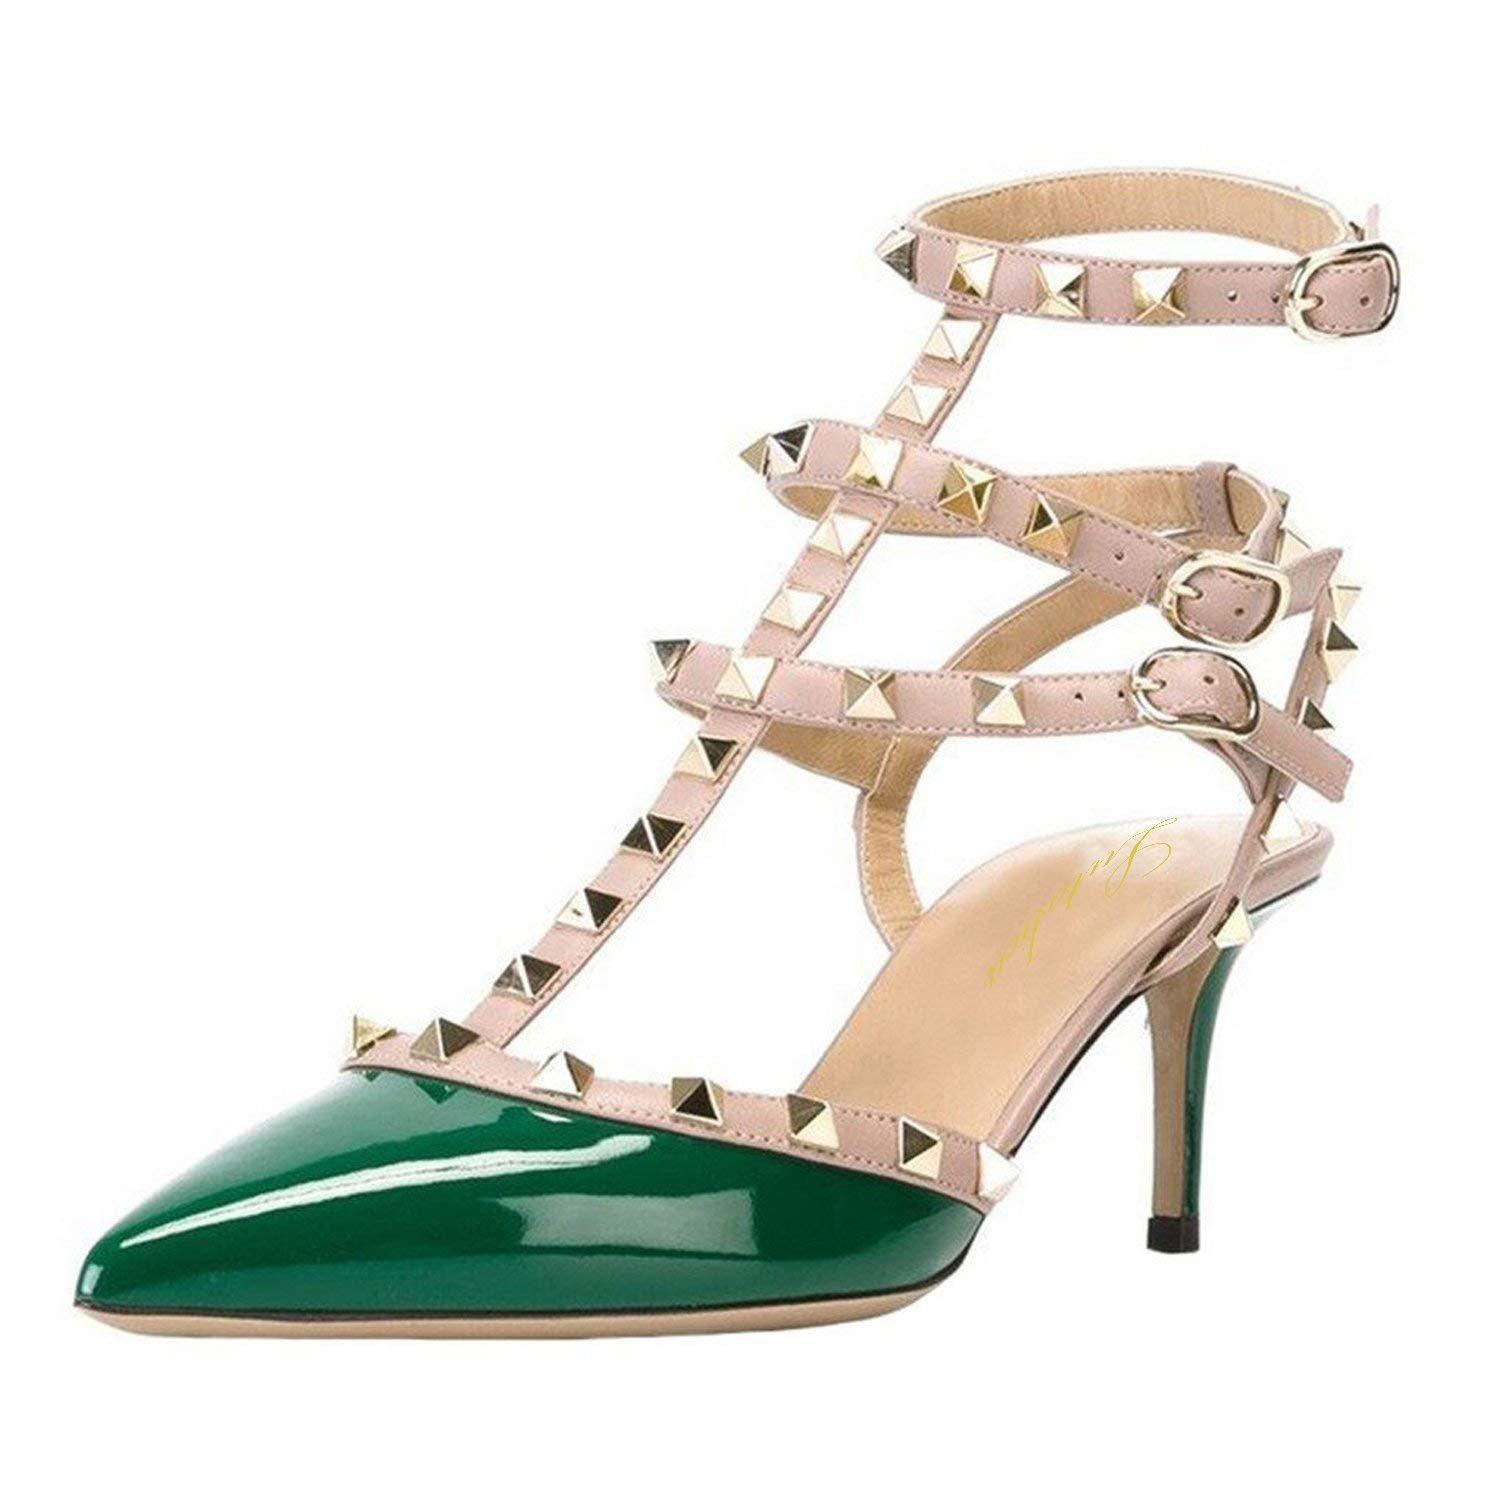 6069a9e30ad Lutalica Women Studded Sandals Pointed Toe Ankle Straps Kitten Heel Shoes  Size 5.5-12 US